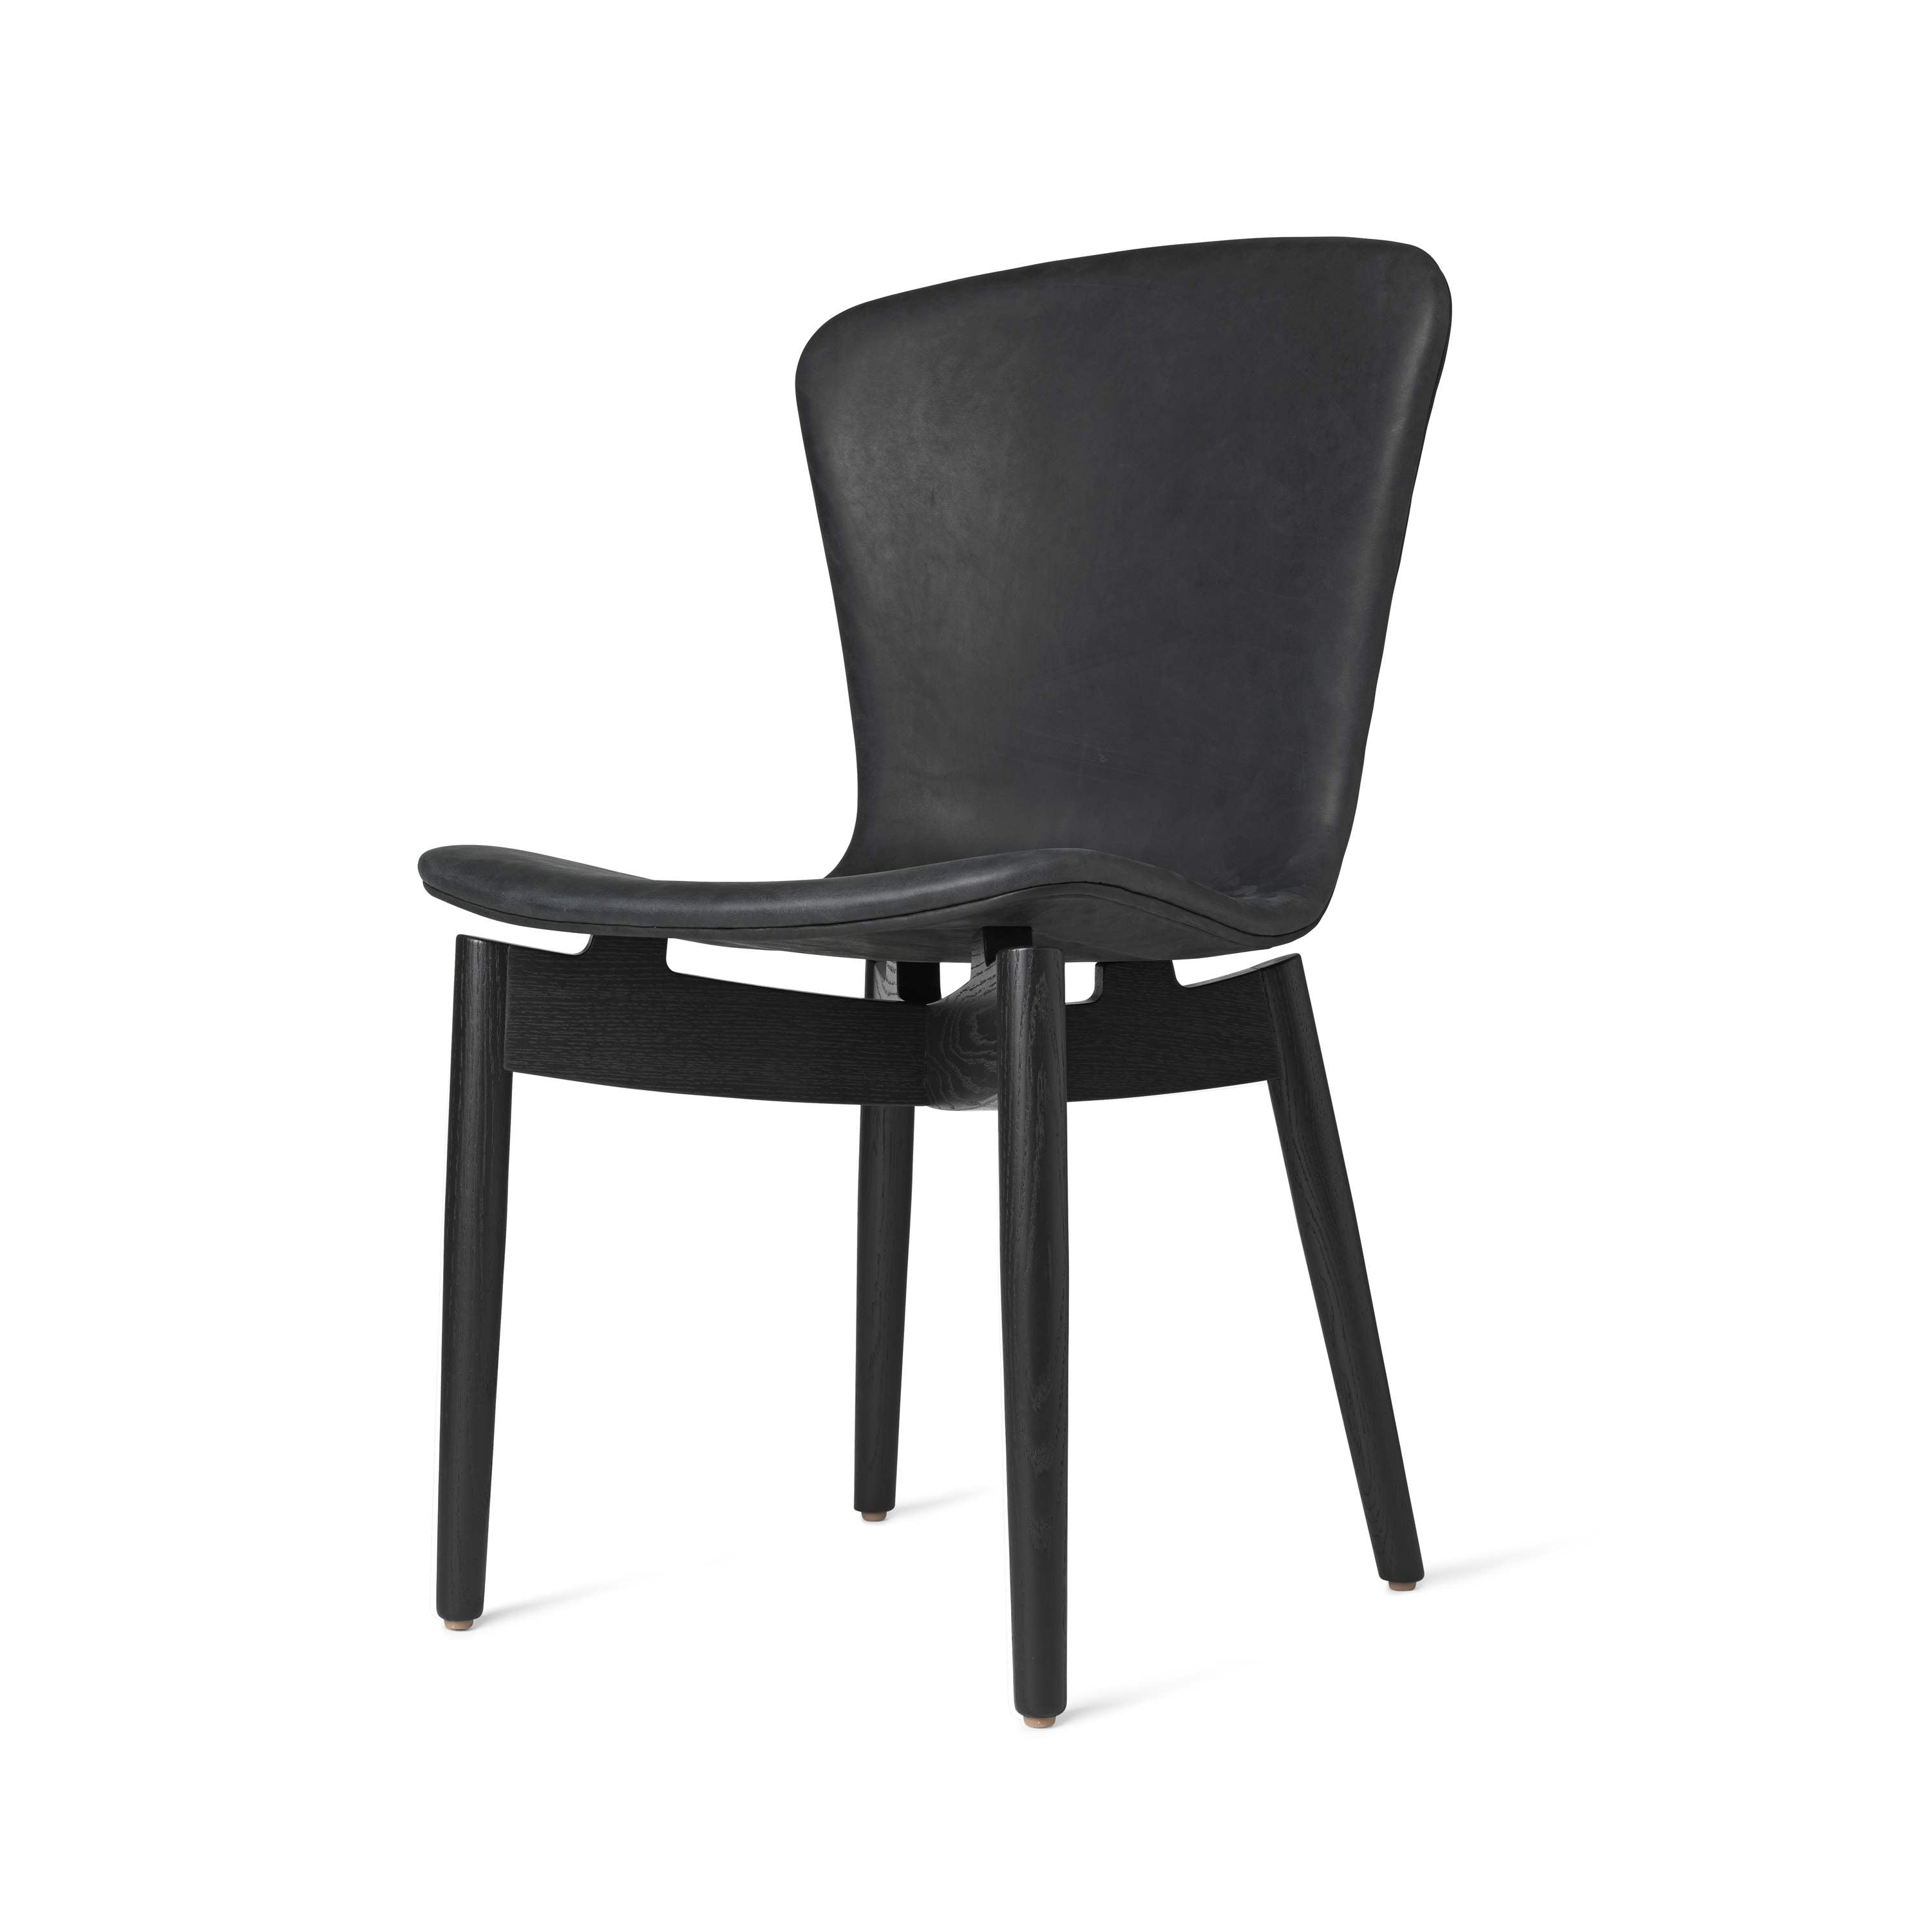 Shell Dining Chair: Black Stained Oak + Ultra Black Leather